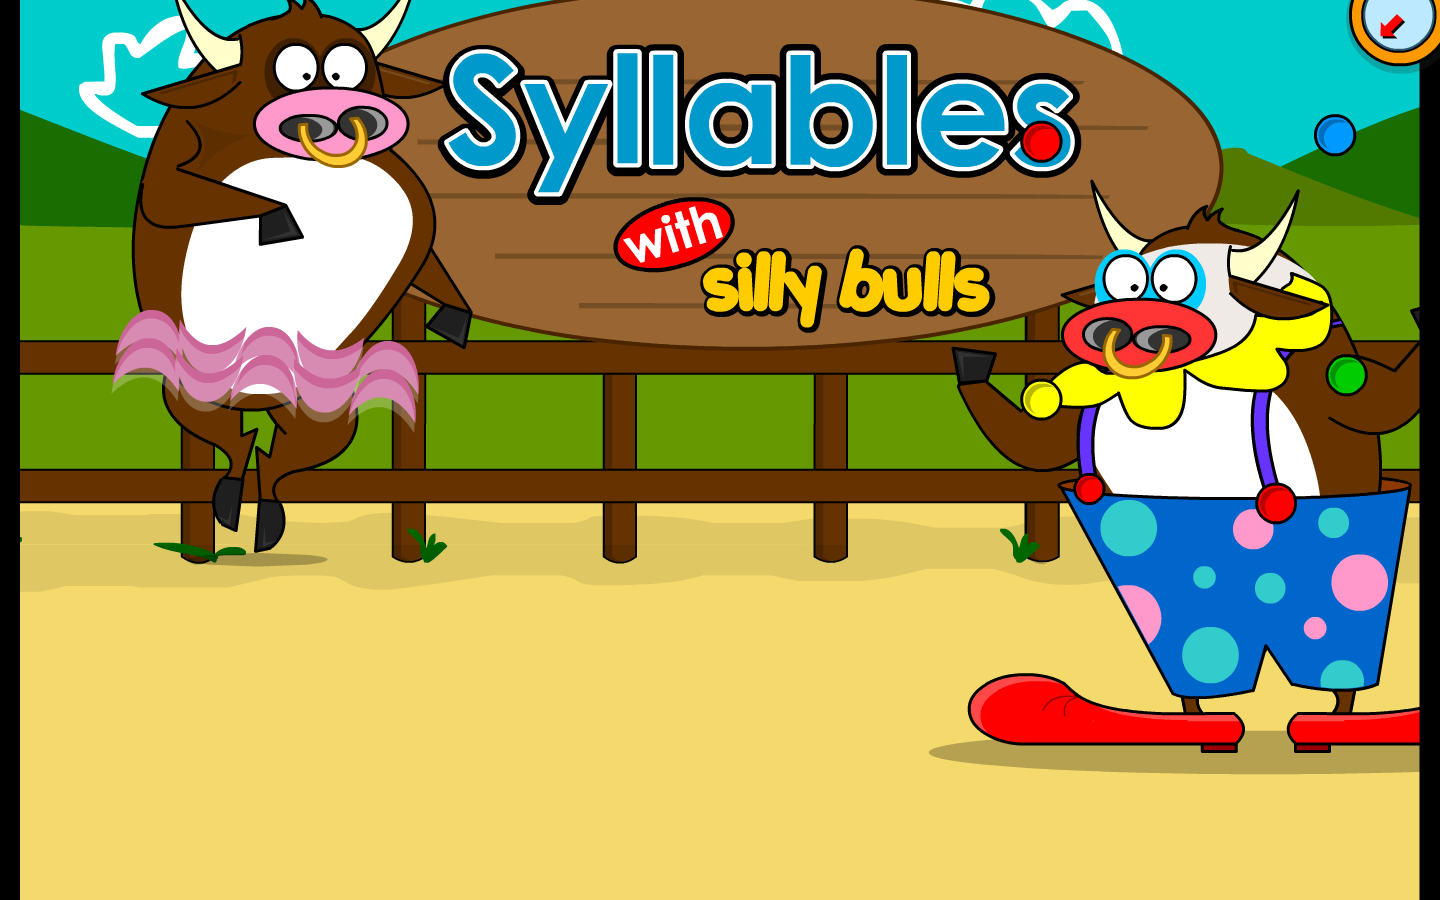 syllables with the silly bulls